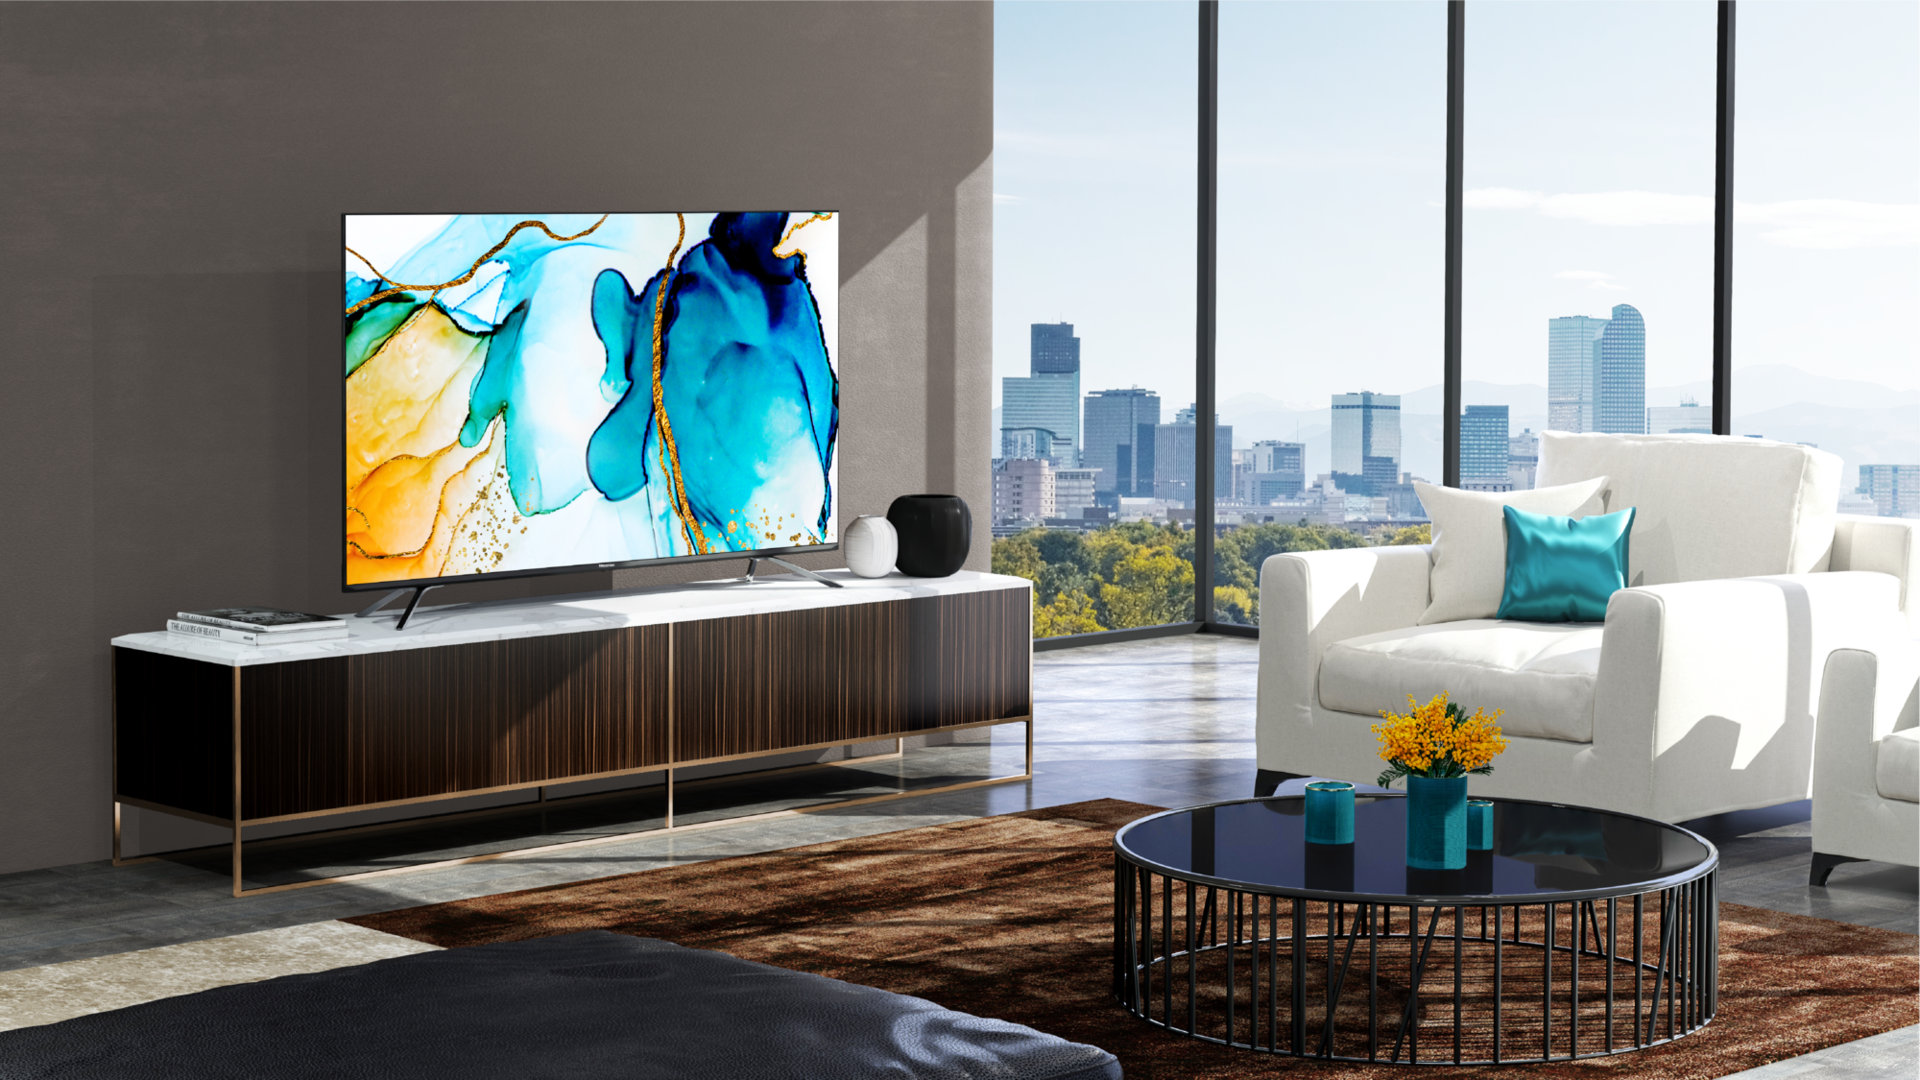 Which Hisense TV series is right for your lifestyle?